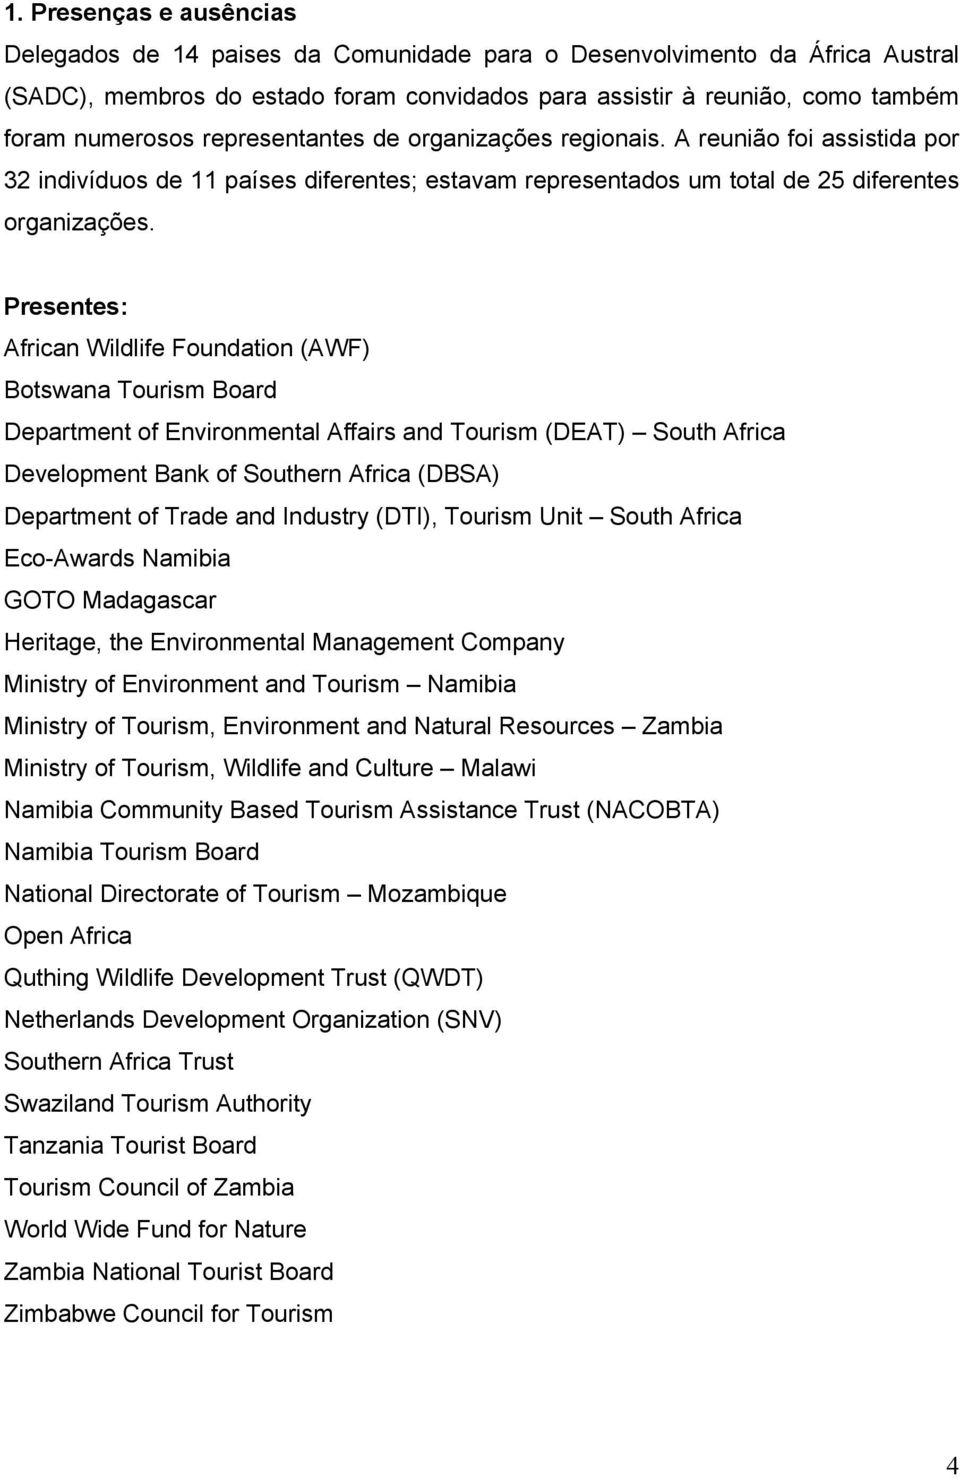 Presentes: African Wildlife Foundation (AWF) Botswana Tourism Board Department of Environmental Affairs and Tourism (DEAT) South Africa Development Bank of Southern Africa (DBSA) Department of Trade